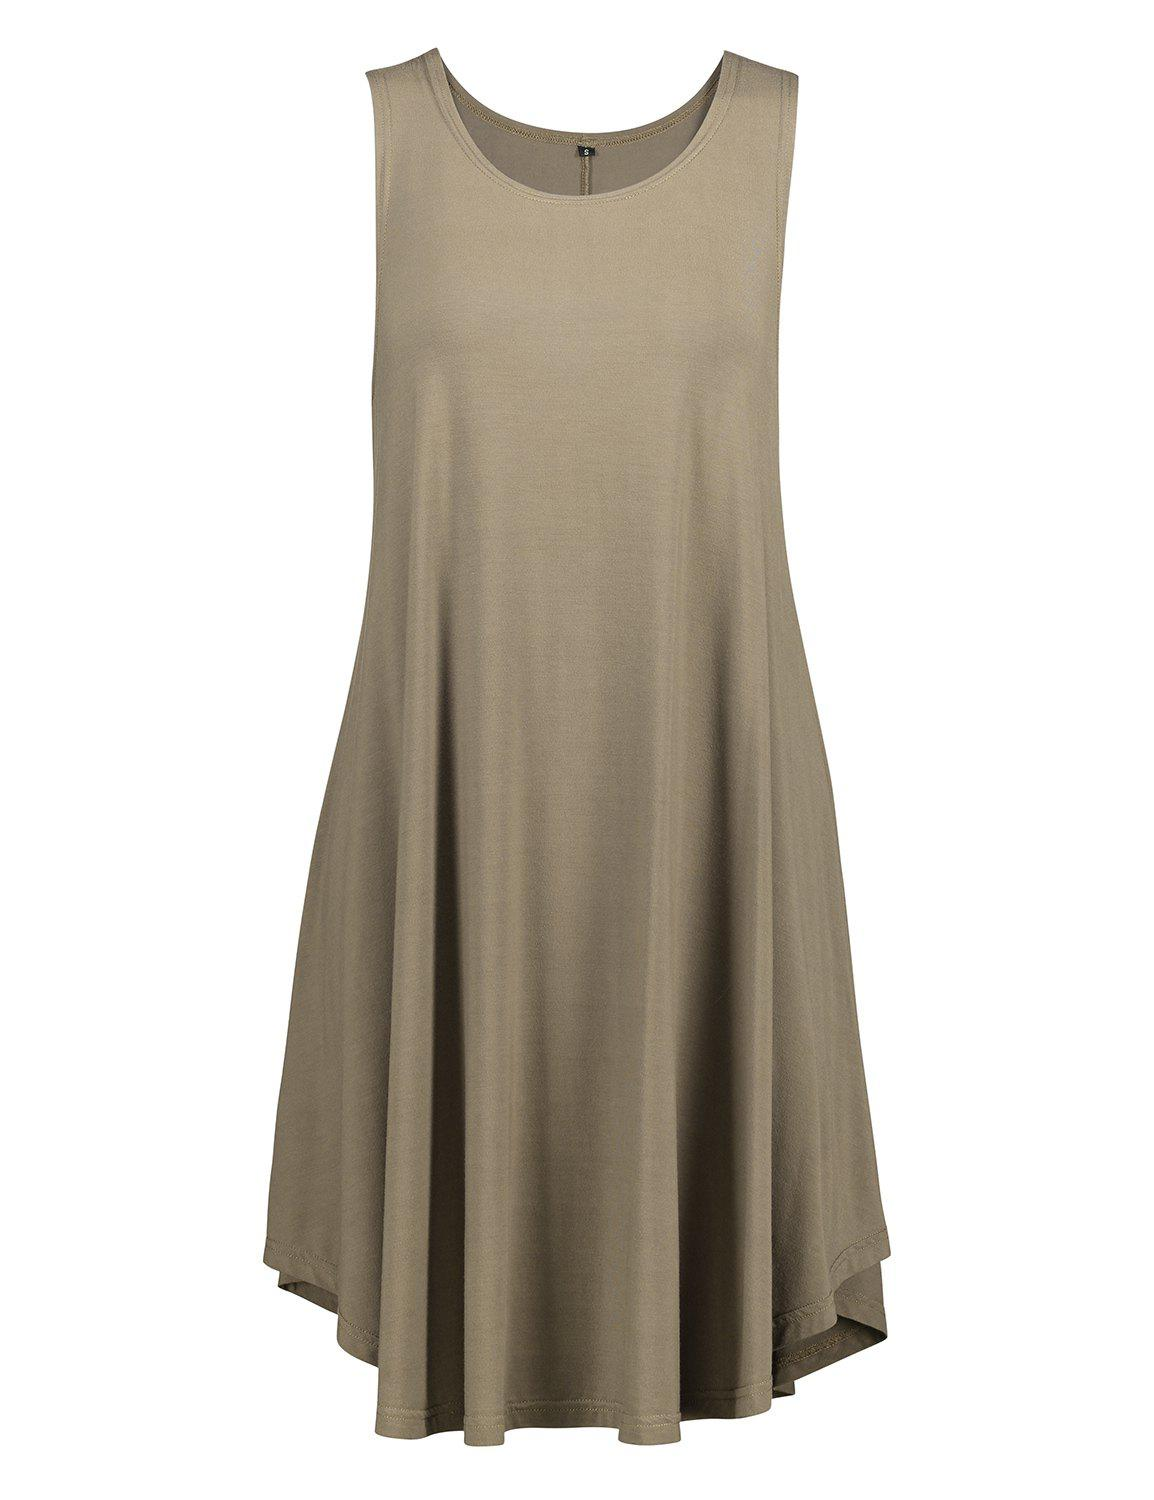 Chic ZAN.STYLE Sleeveless Swing Tunic Dress Tank Top